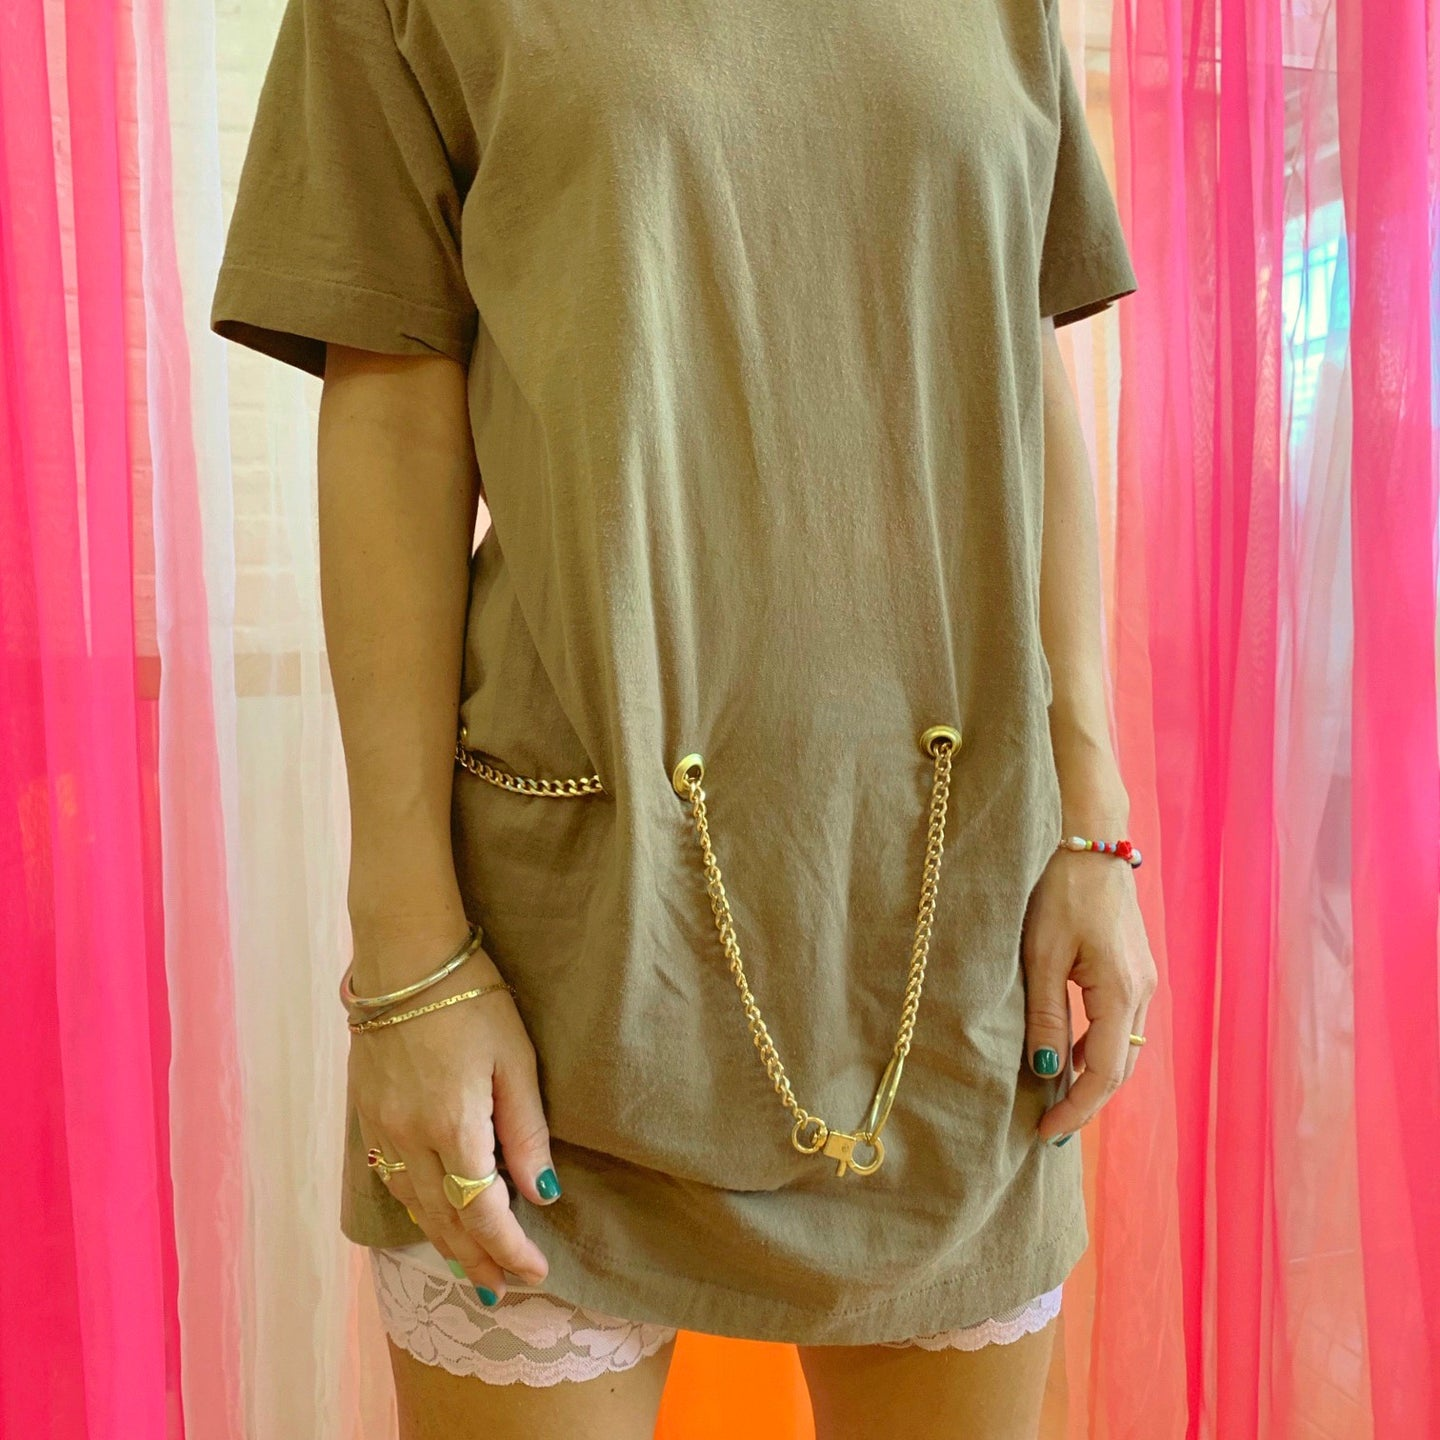 Coffee chain belt tee dress